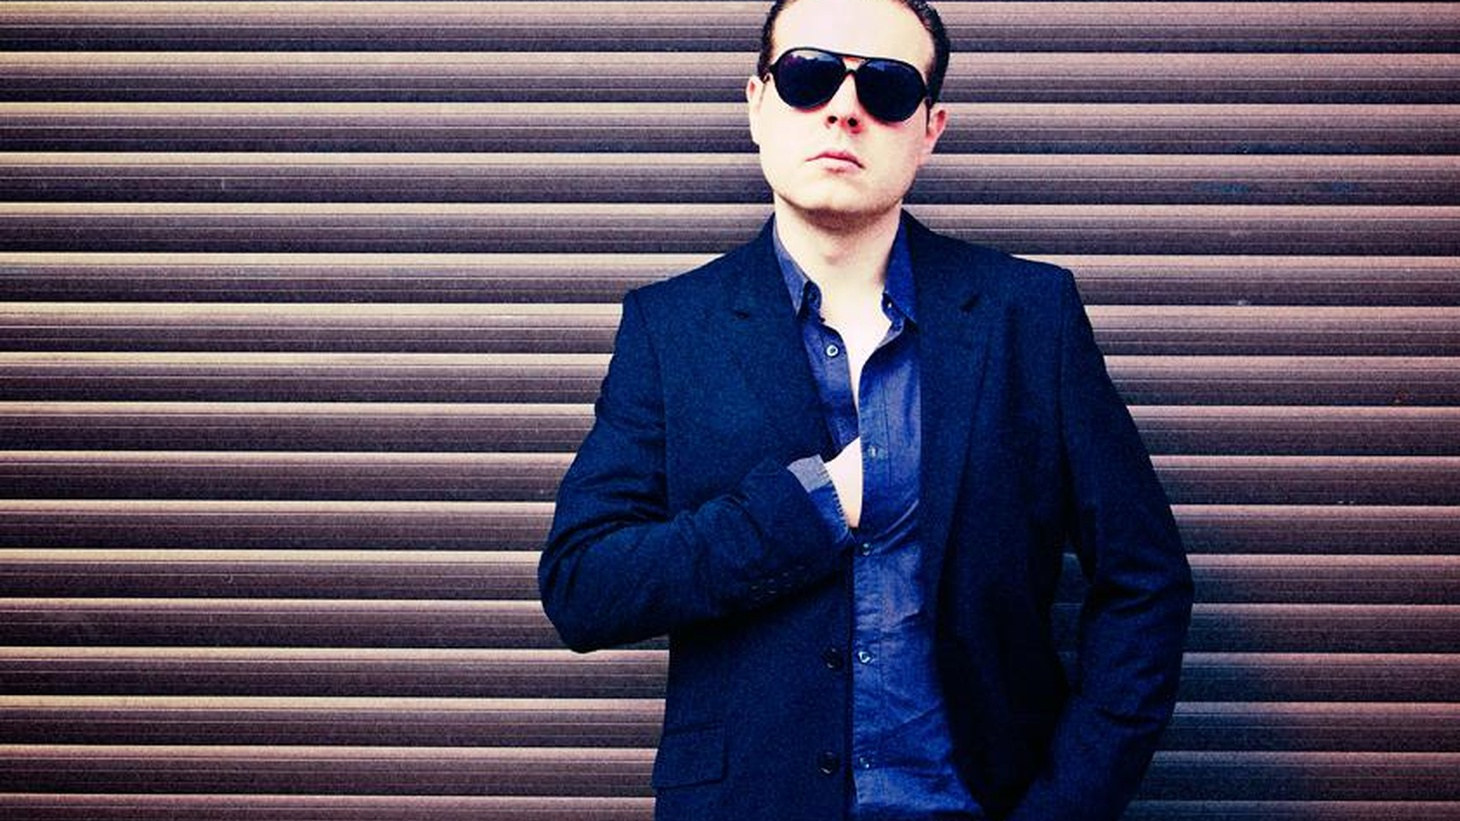 Benjamin Schoos has produced songs for many cult figures on the French pop scene. TTT includes a duet by chanteuse Marie France and the distinct sound of Chrissie Hynde.